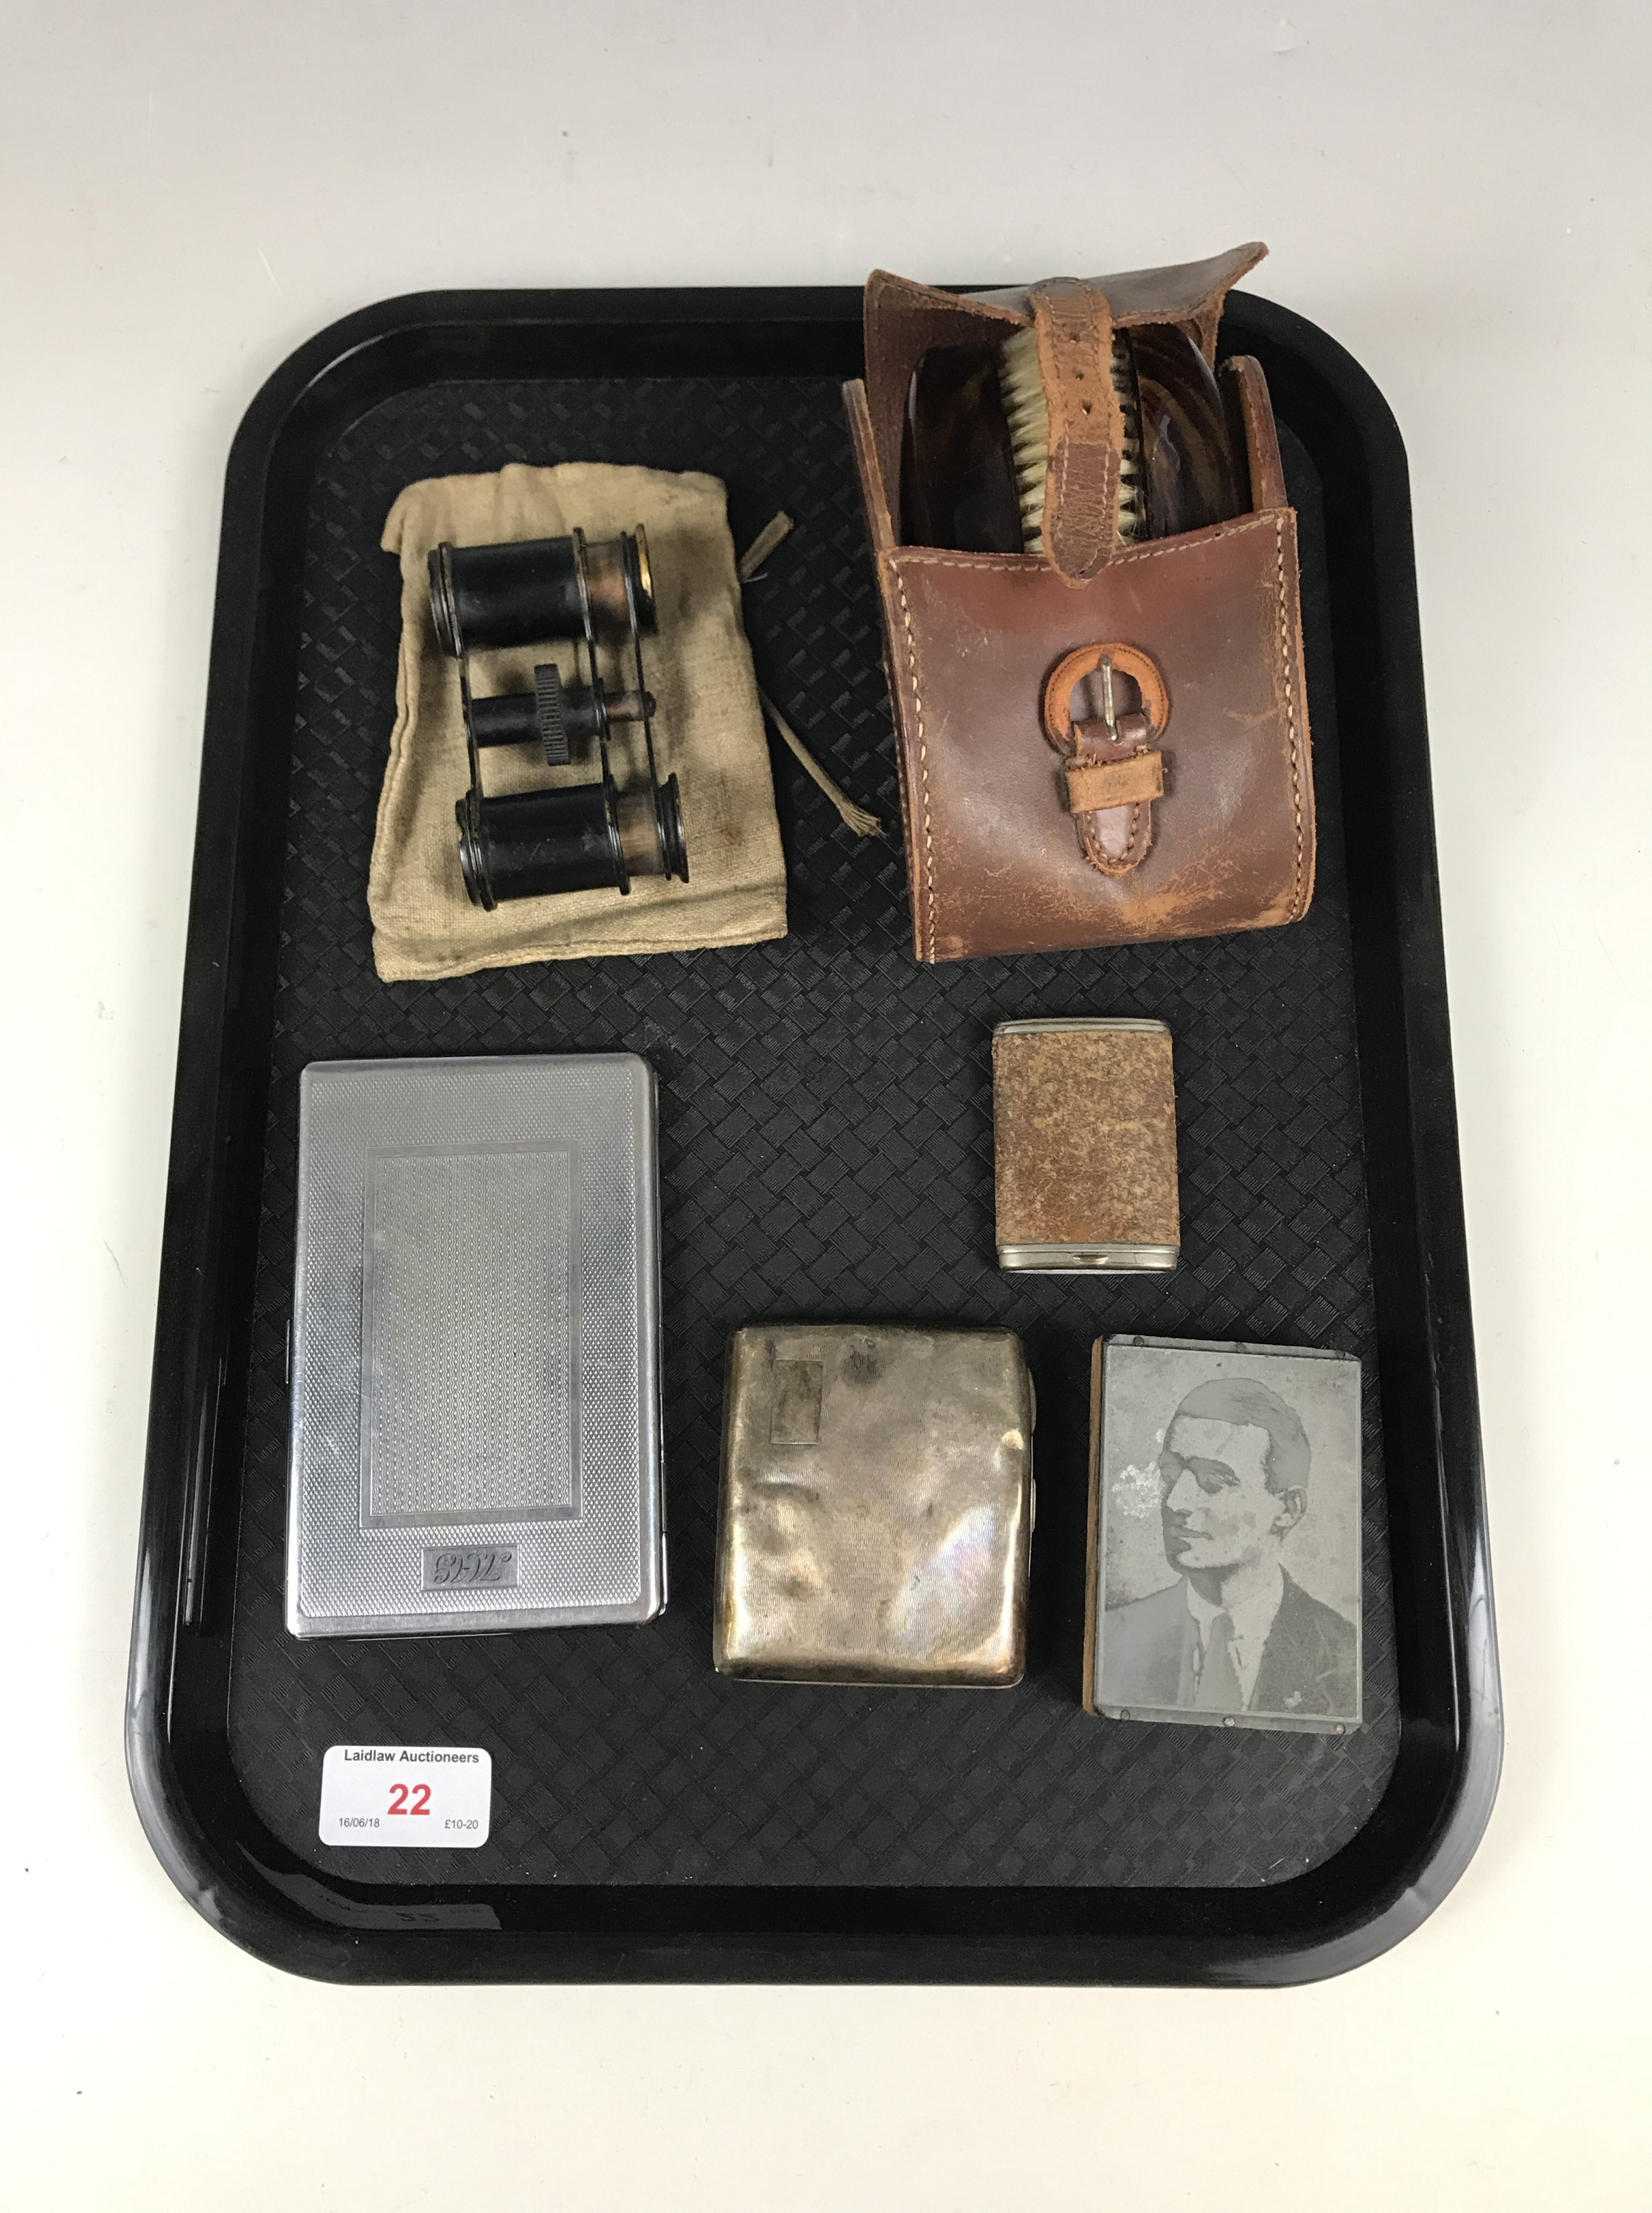 Lot 22 - Sundry collectors' items including opera glasses, a silver cigarette case, and a brush set etc.